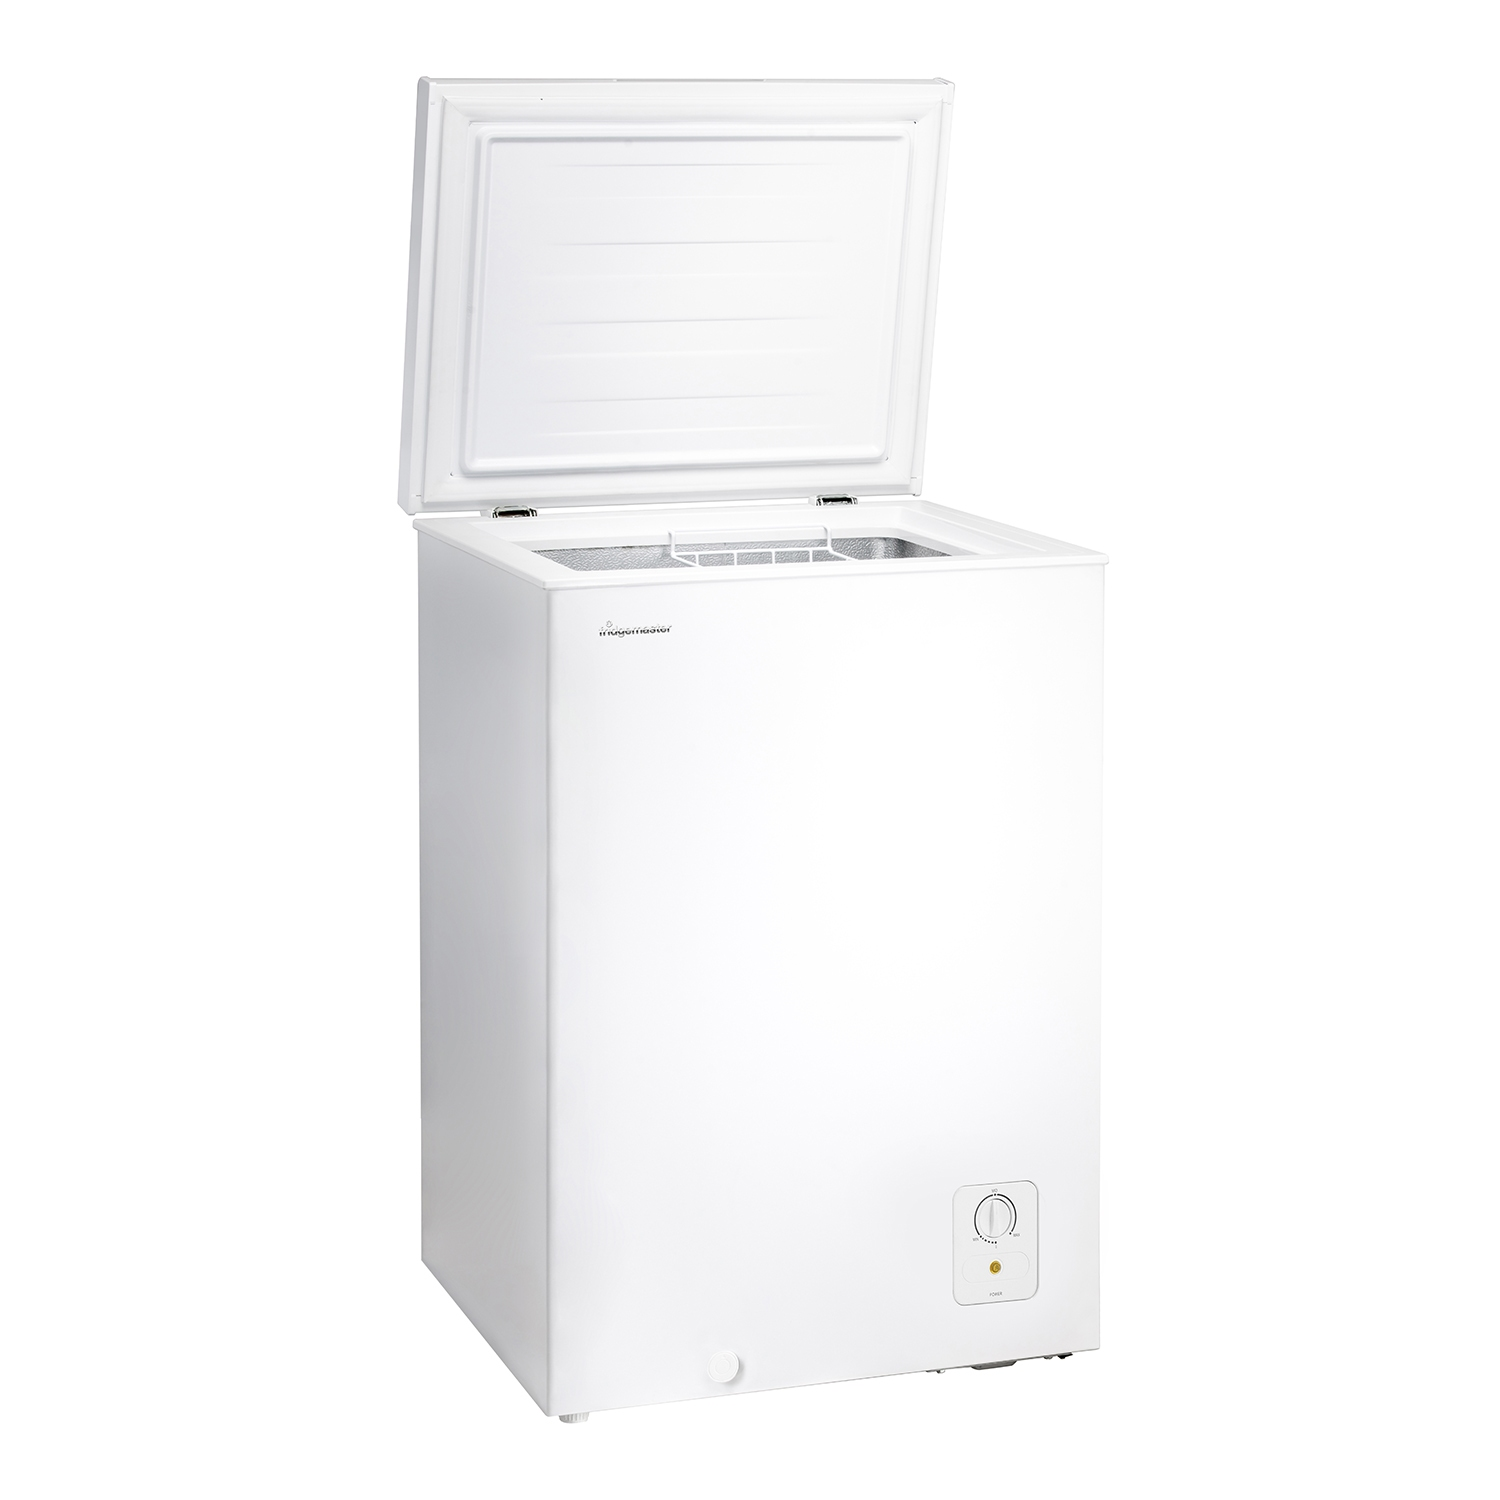 Fridgemaster 55cm Static Chest Freezer - White - A+ Energy Rated - 6